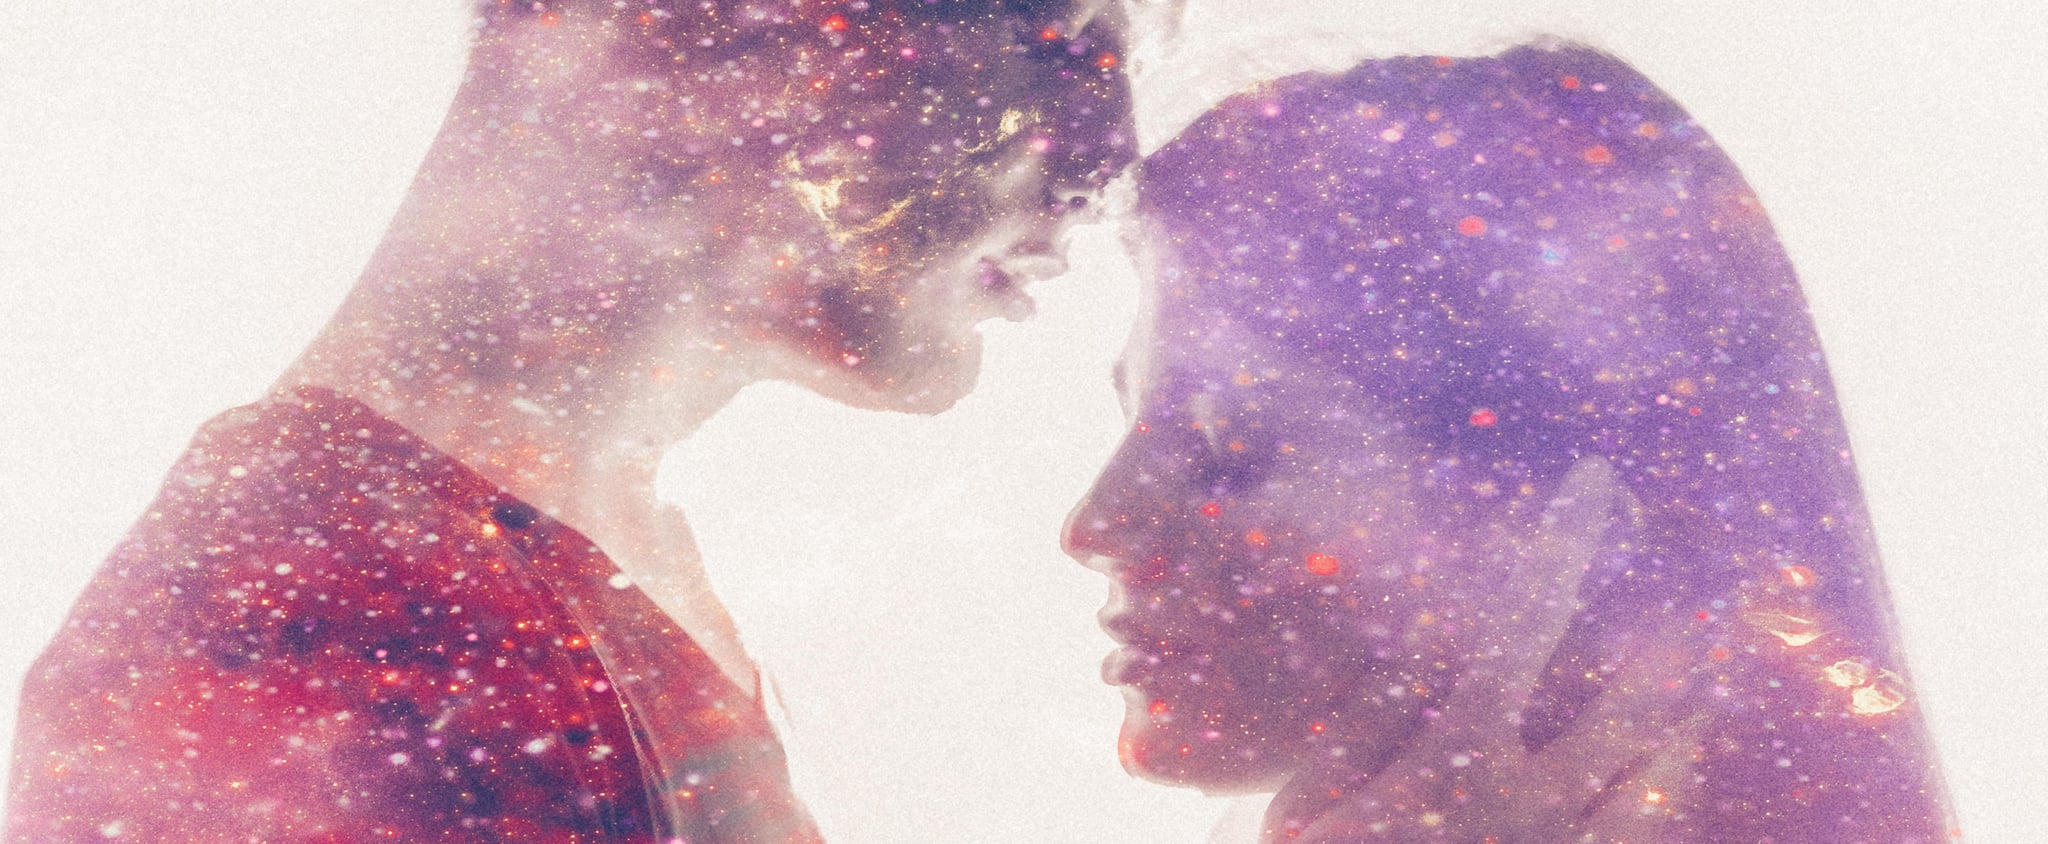 How to Get a Guy Based on His Zodiac Sign